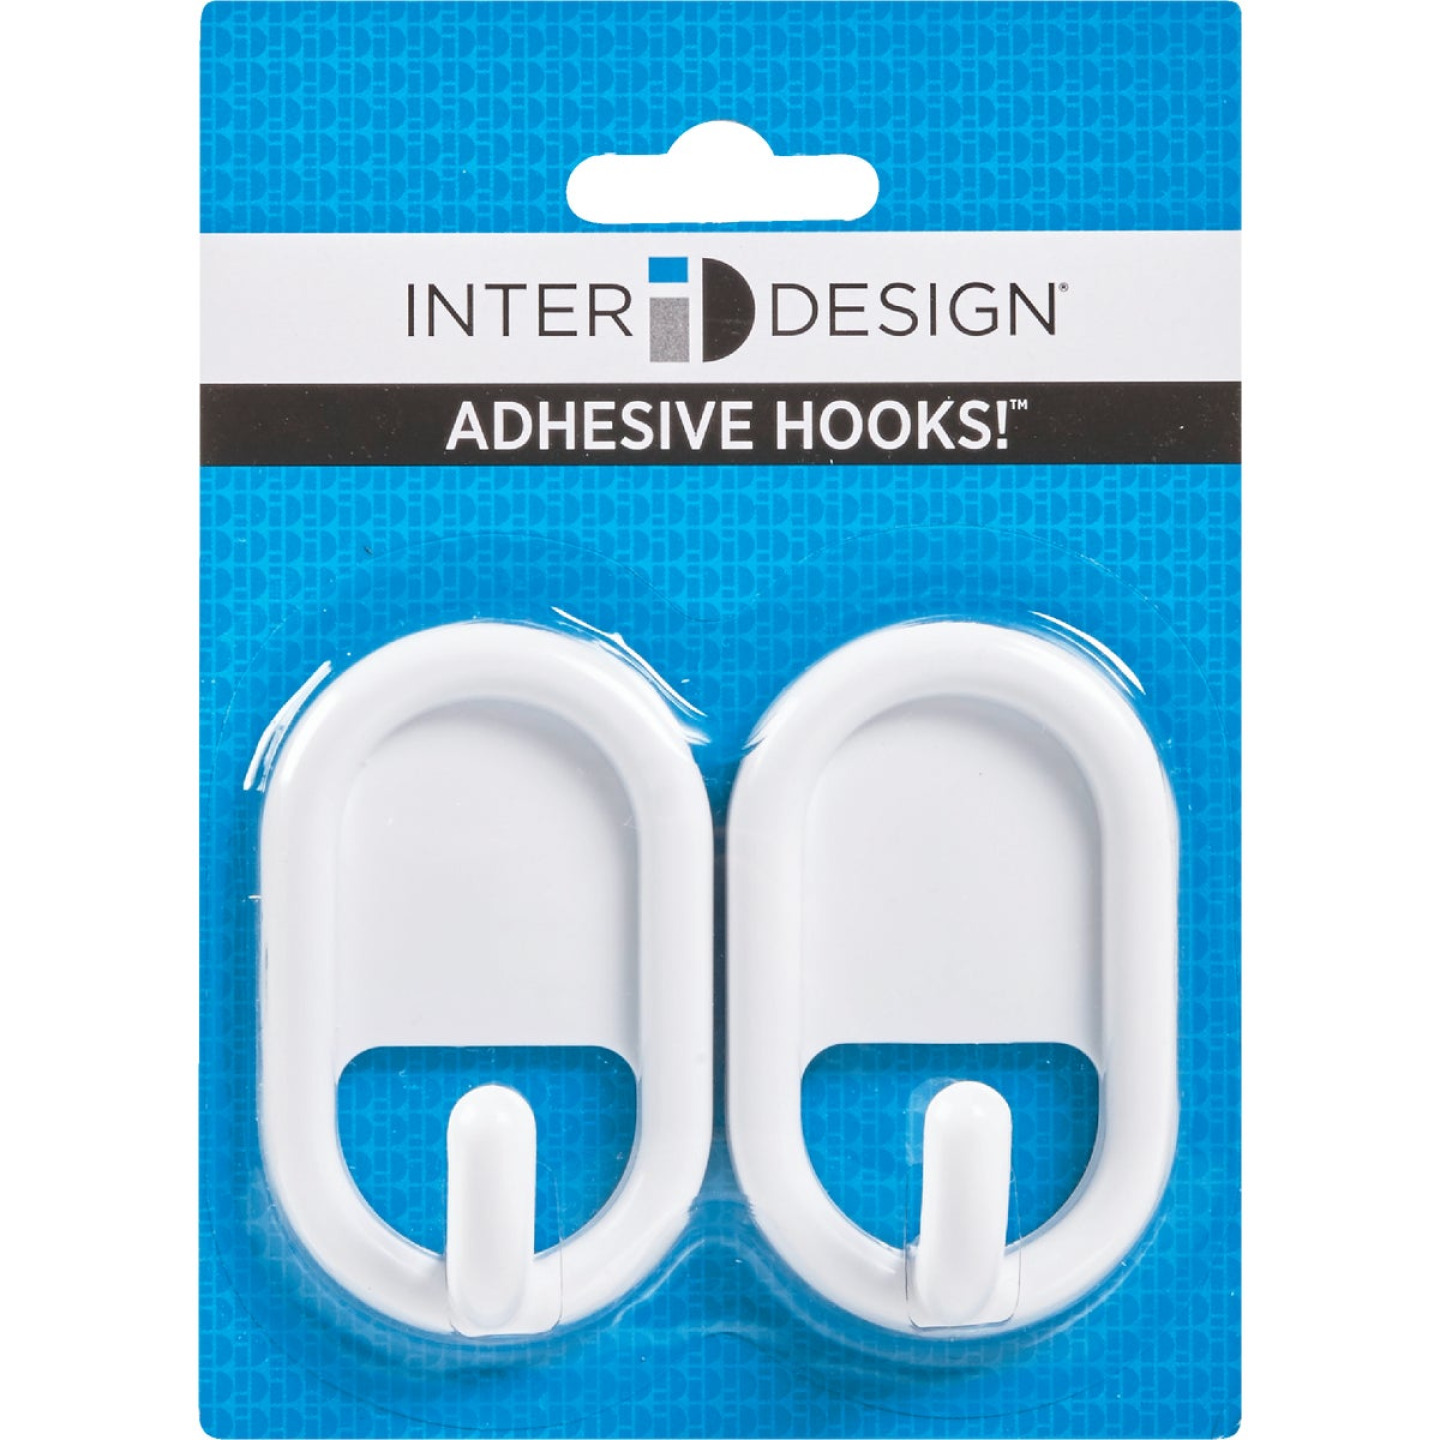 InterDesign Utility White Plastic Adhesive Hook (2-Pack) Image 2